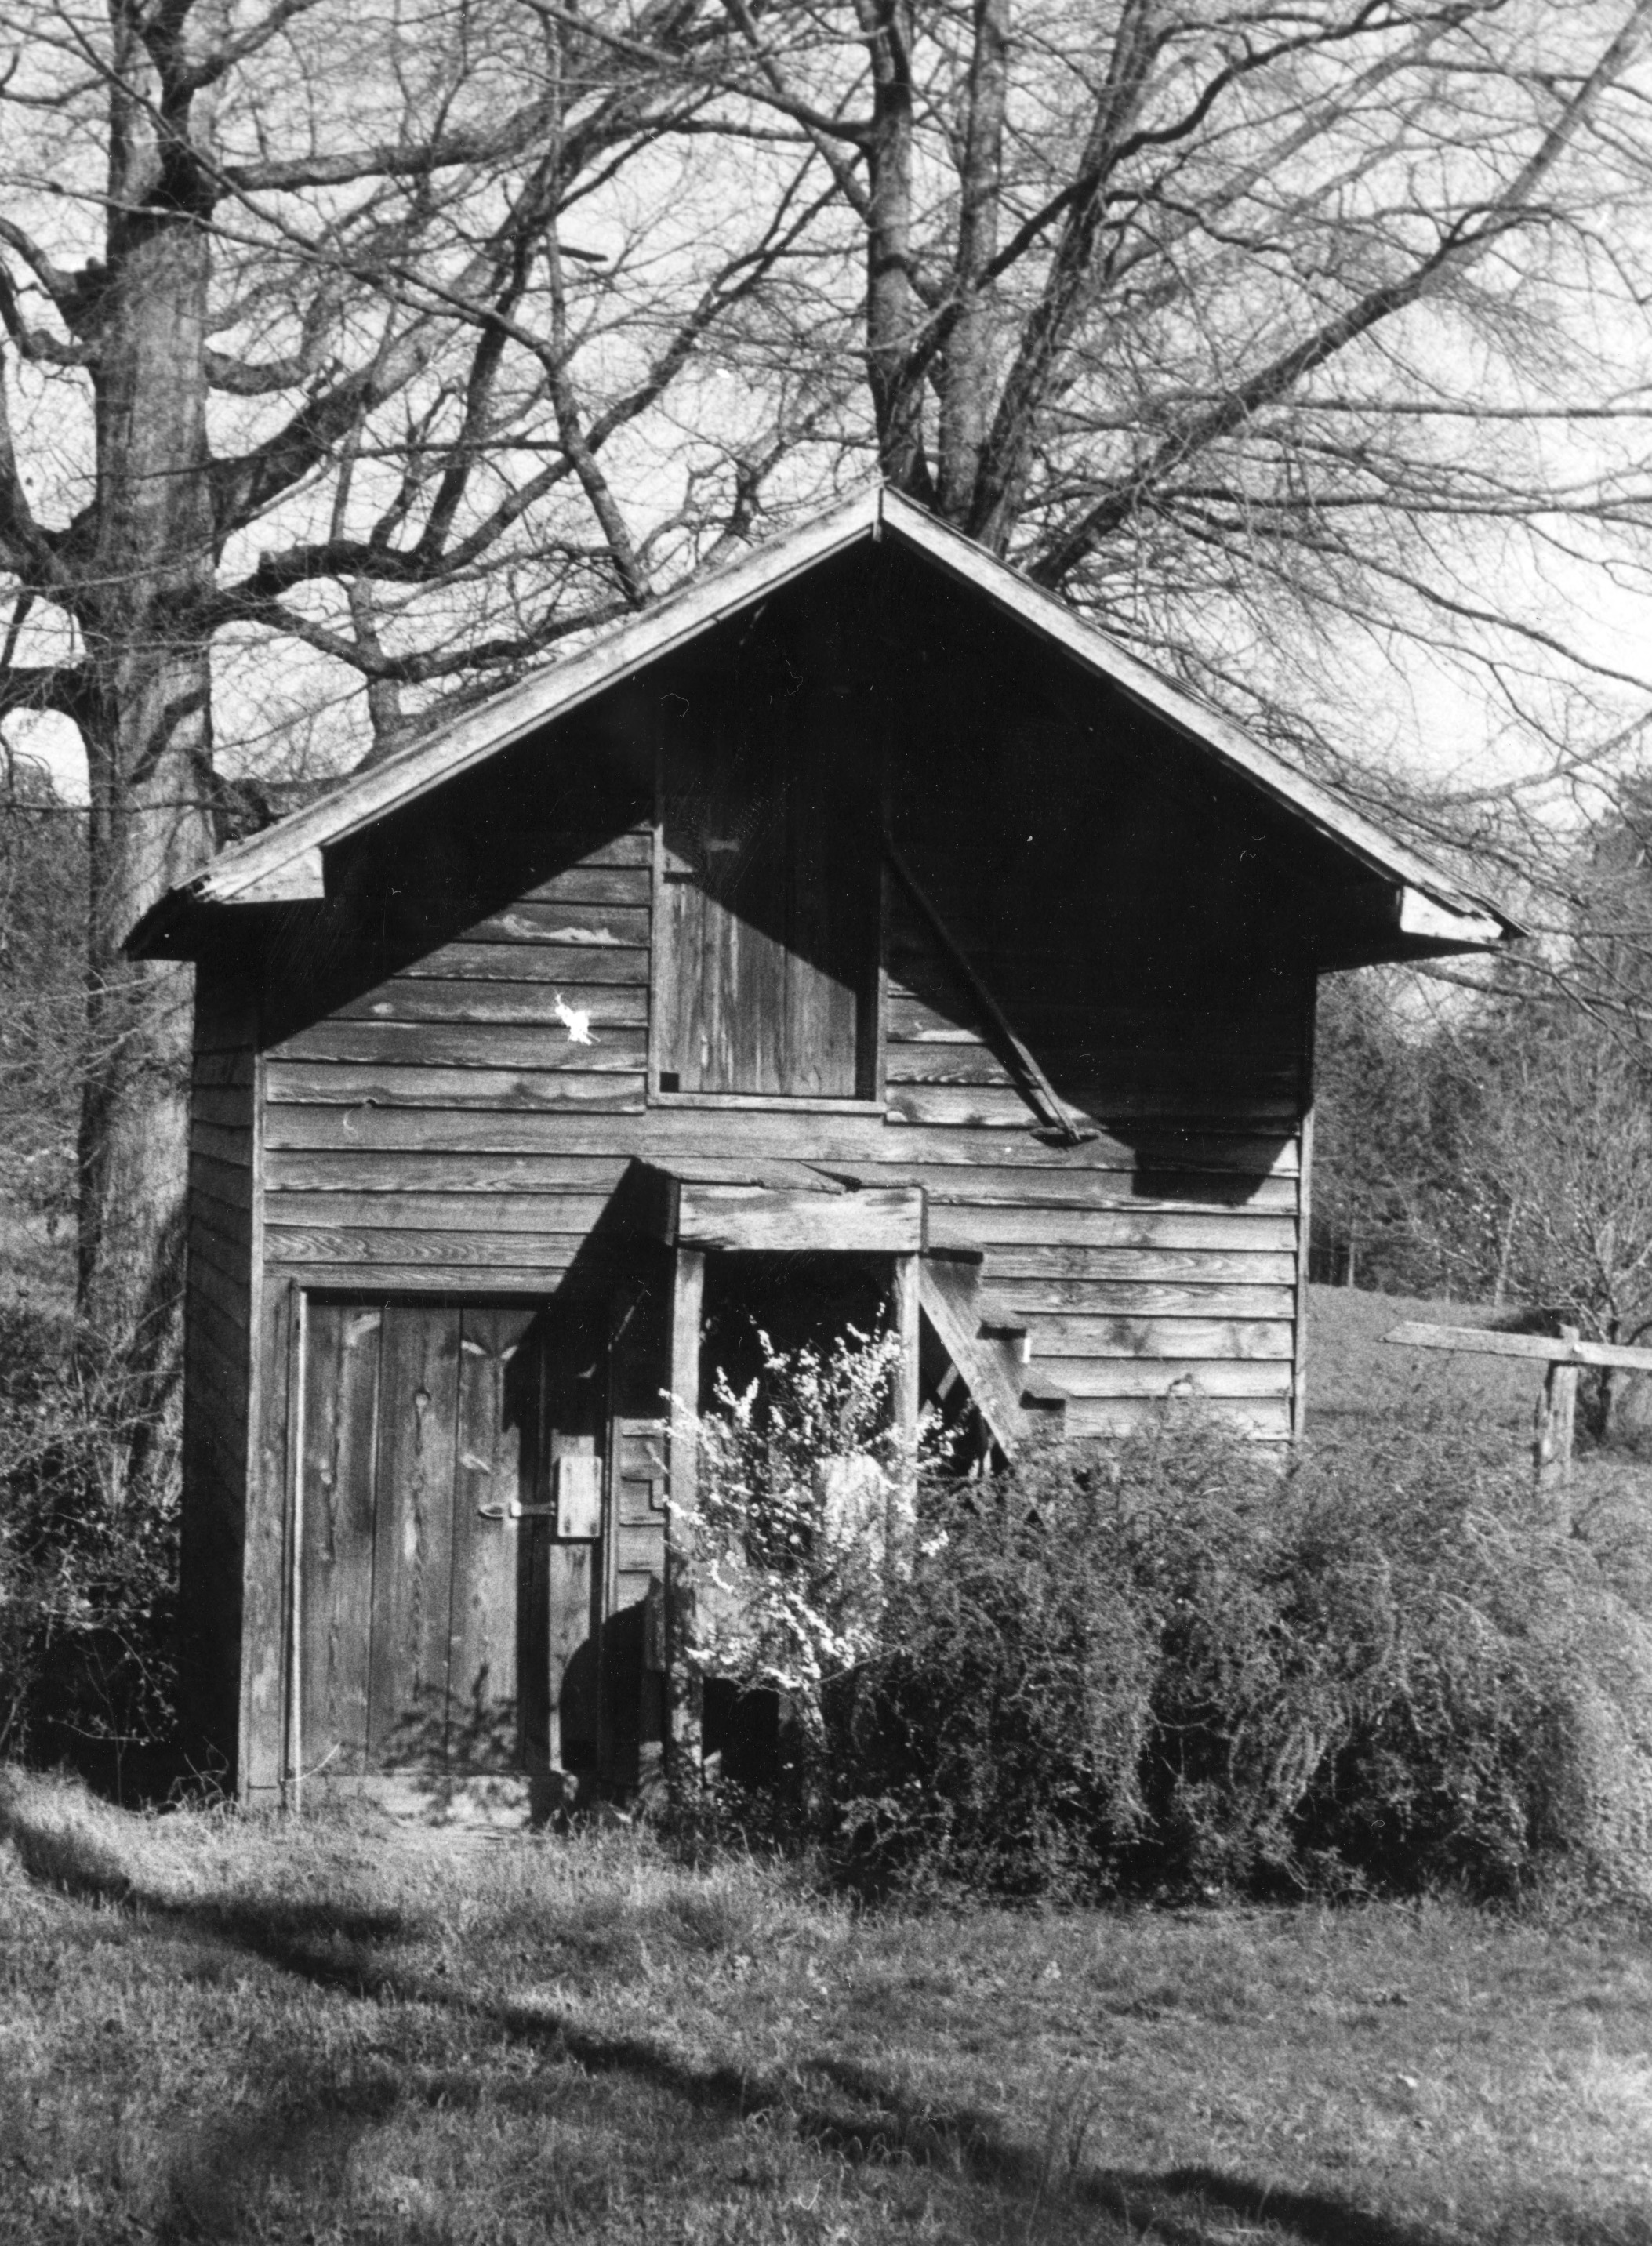 Smokehouse, Colonel Benjamin Franklin Brown House, Dixie, North Carolina